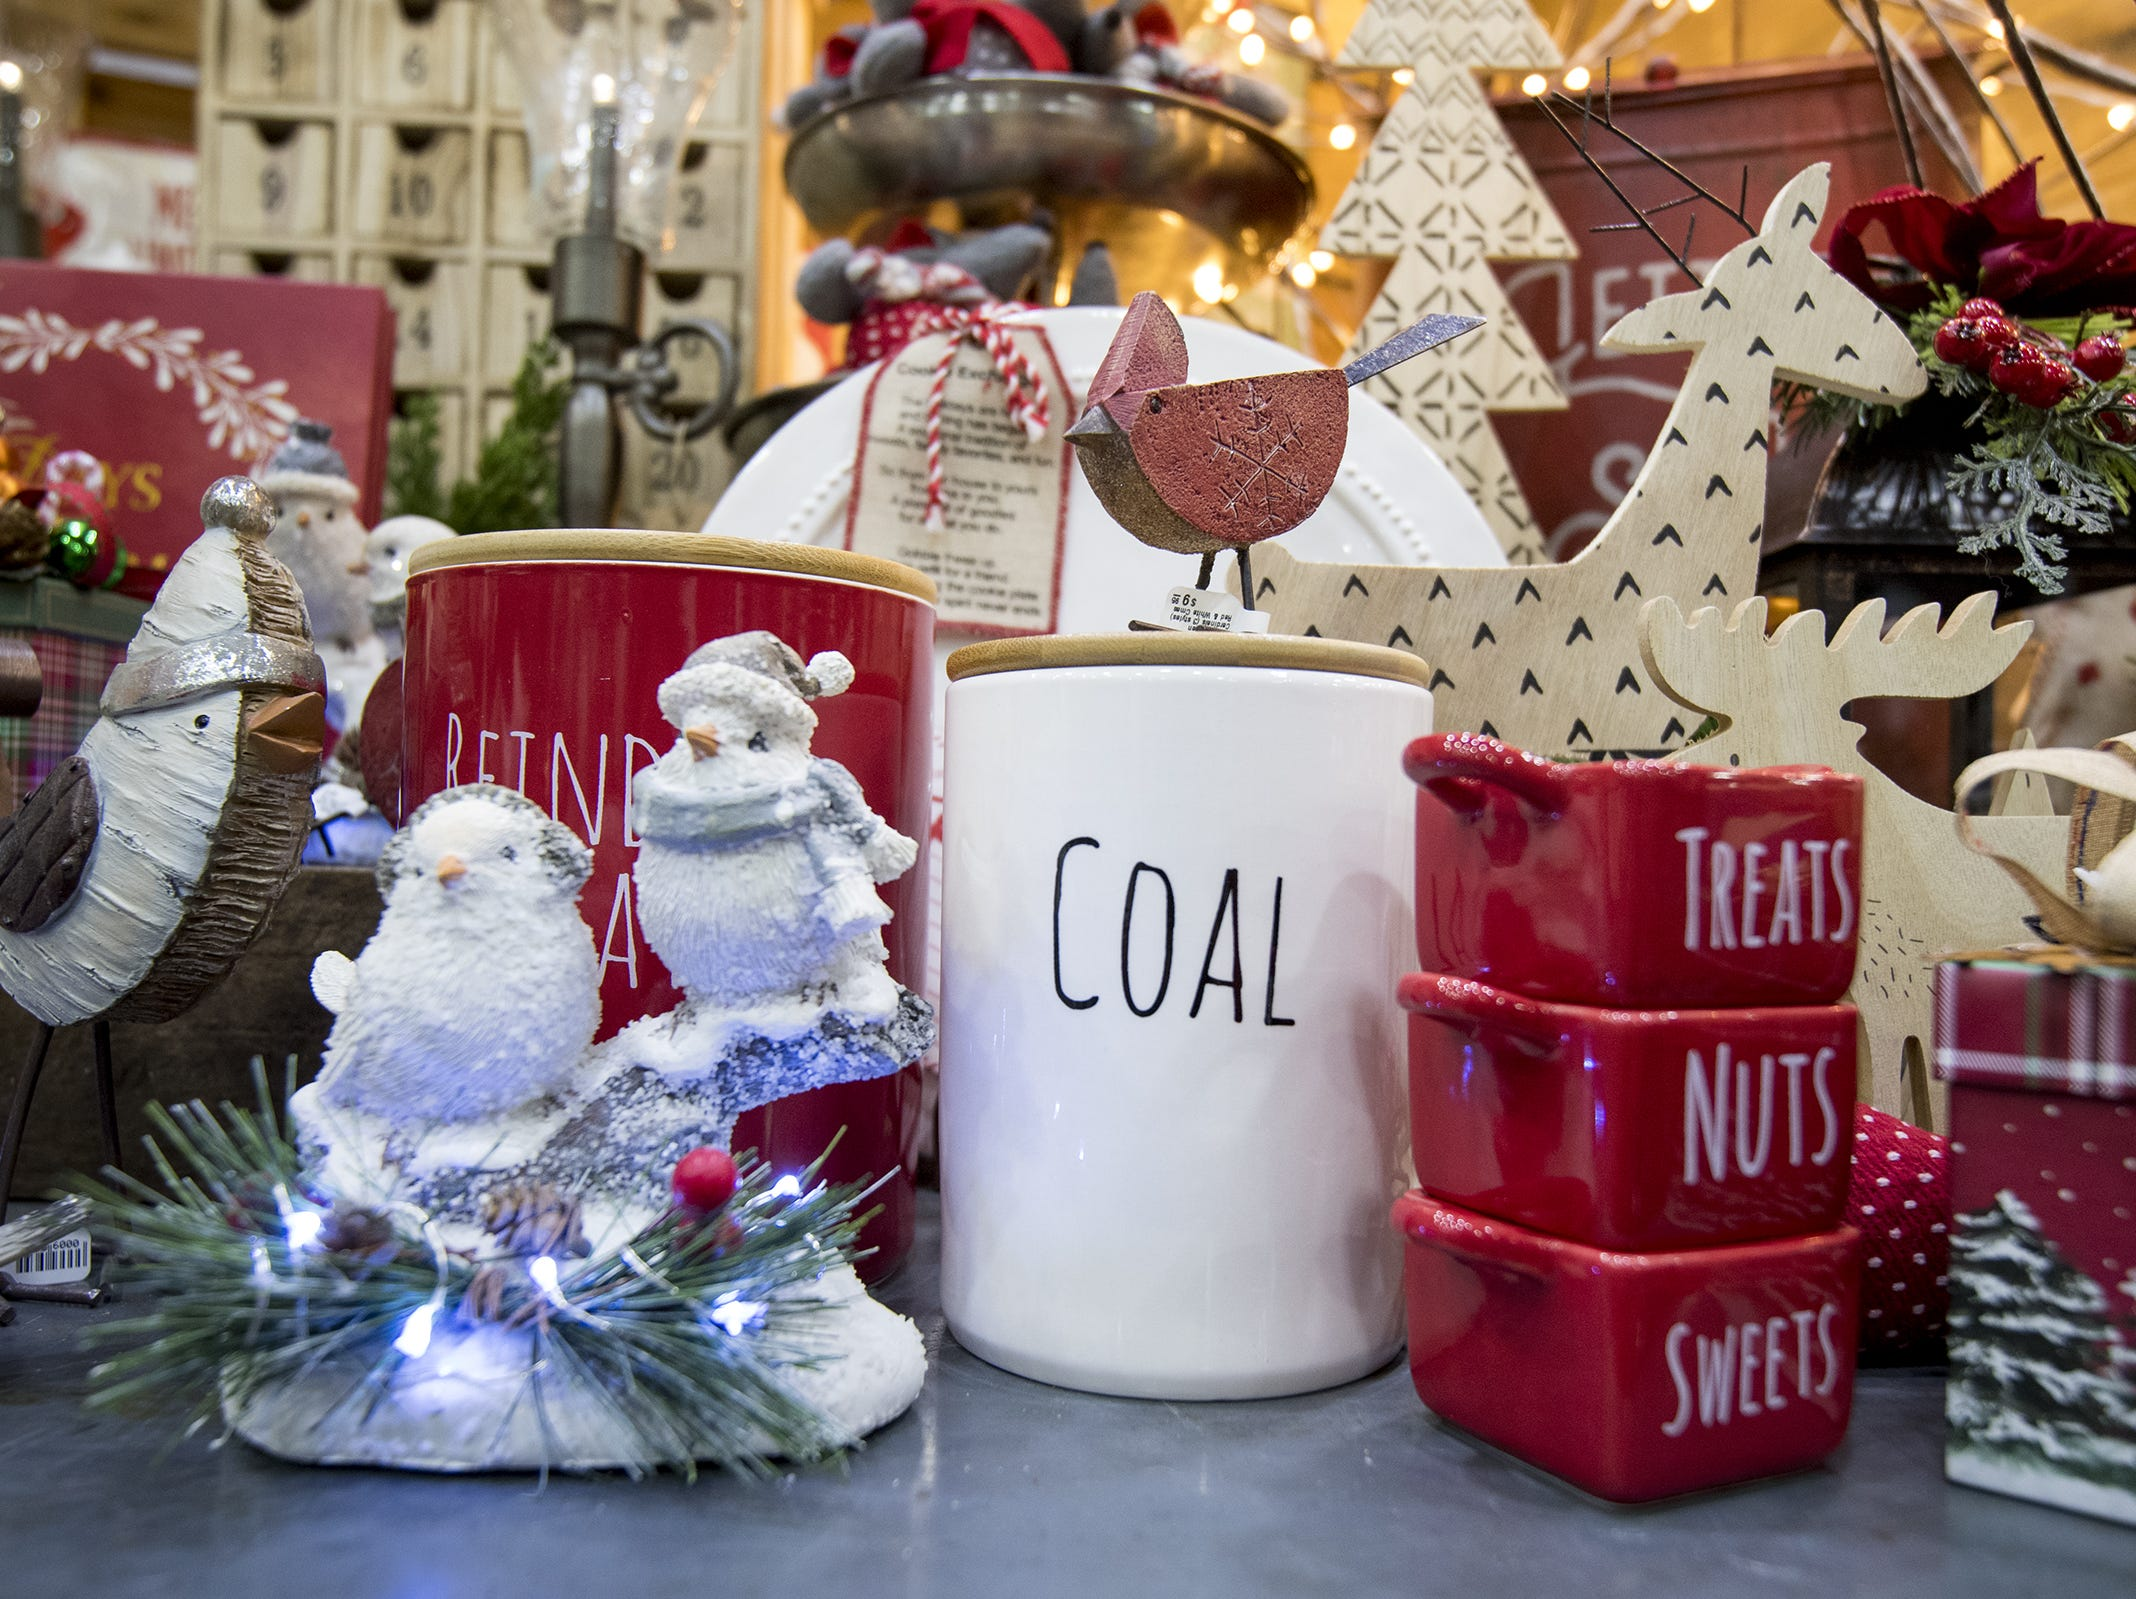 Flourish Home sells tons of holiday decorations during the Greater Cincinnati Holiday Market at the Duke Energy Center Friday, November 2, 2018 in Cincinnati, Ohio.